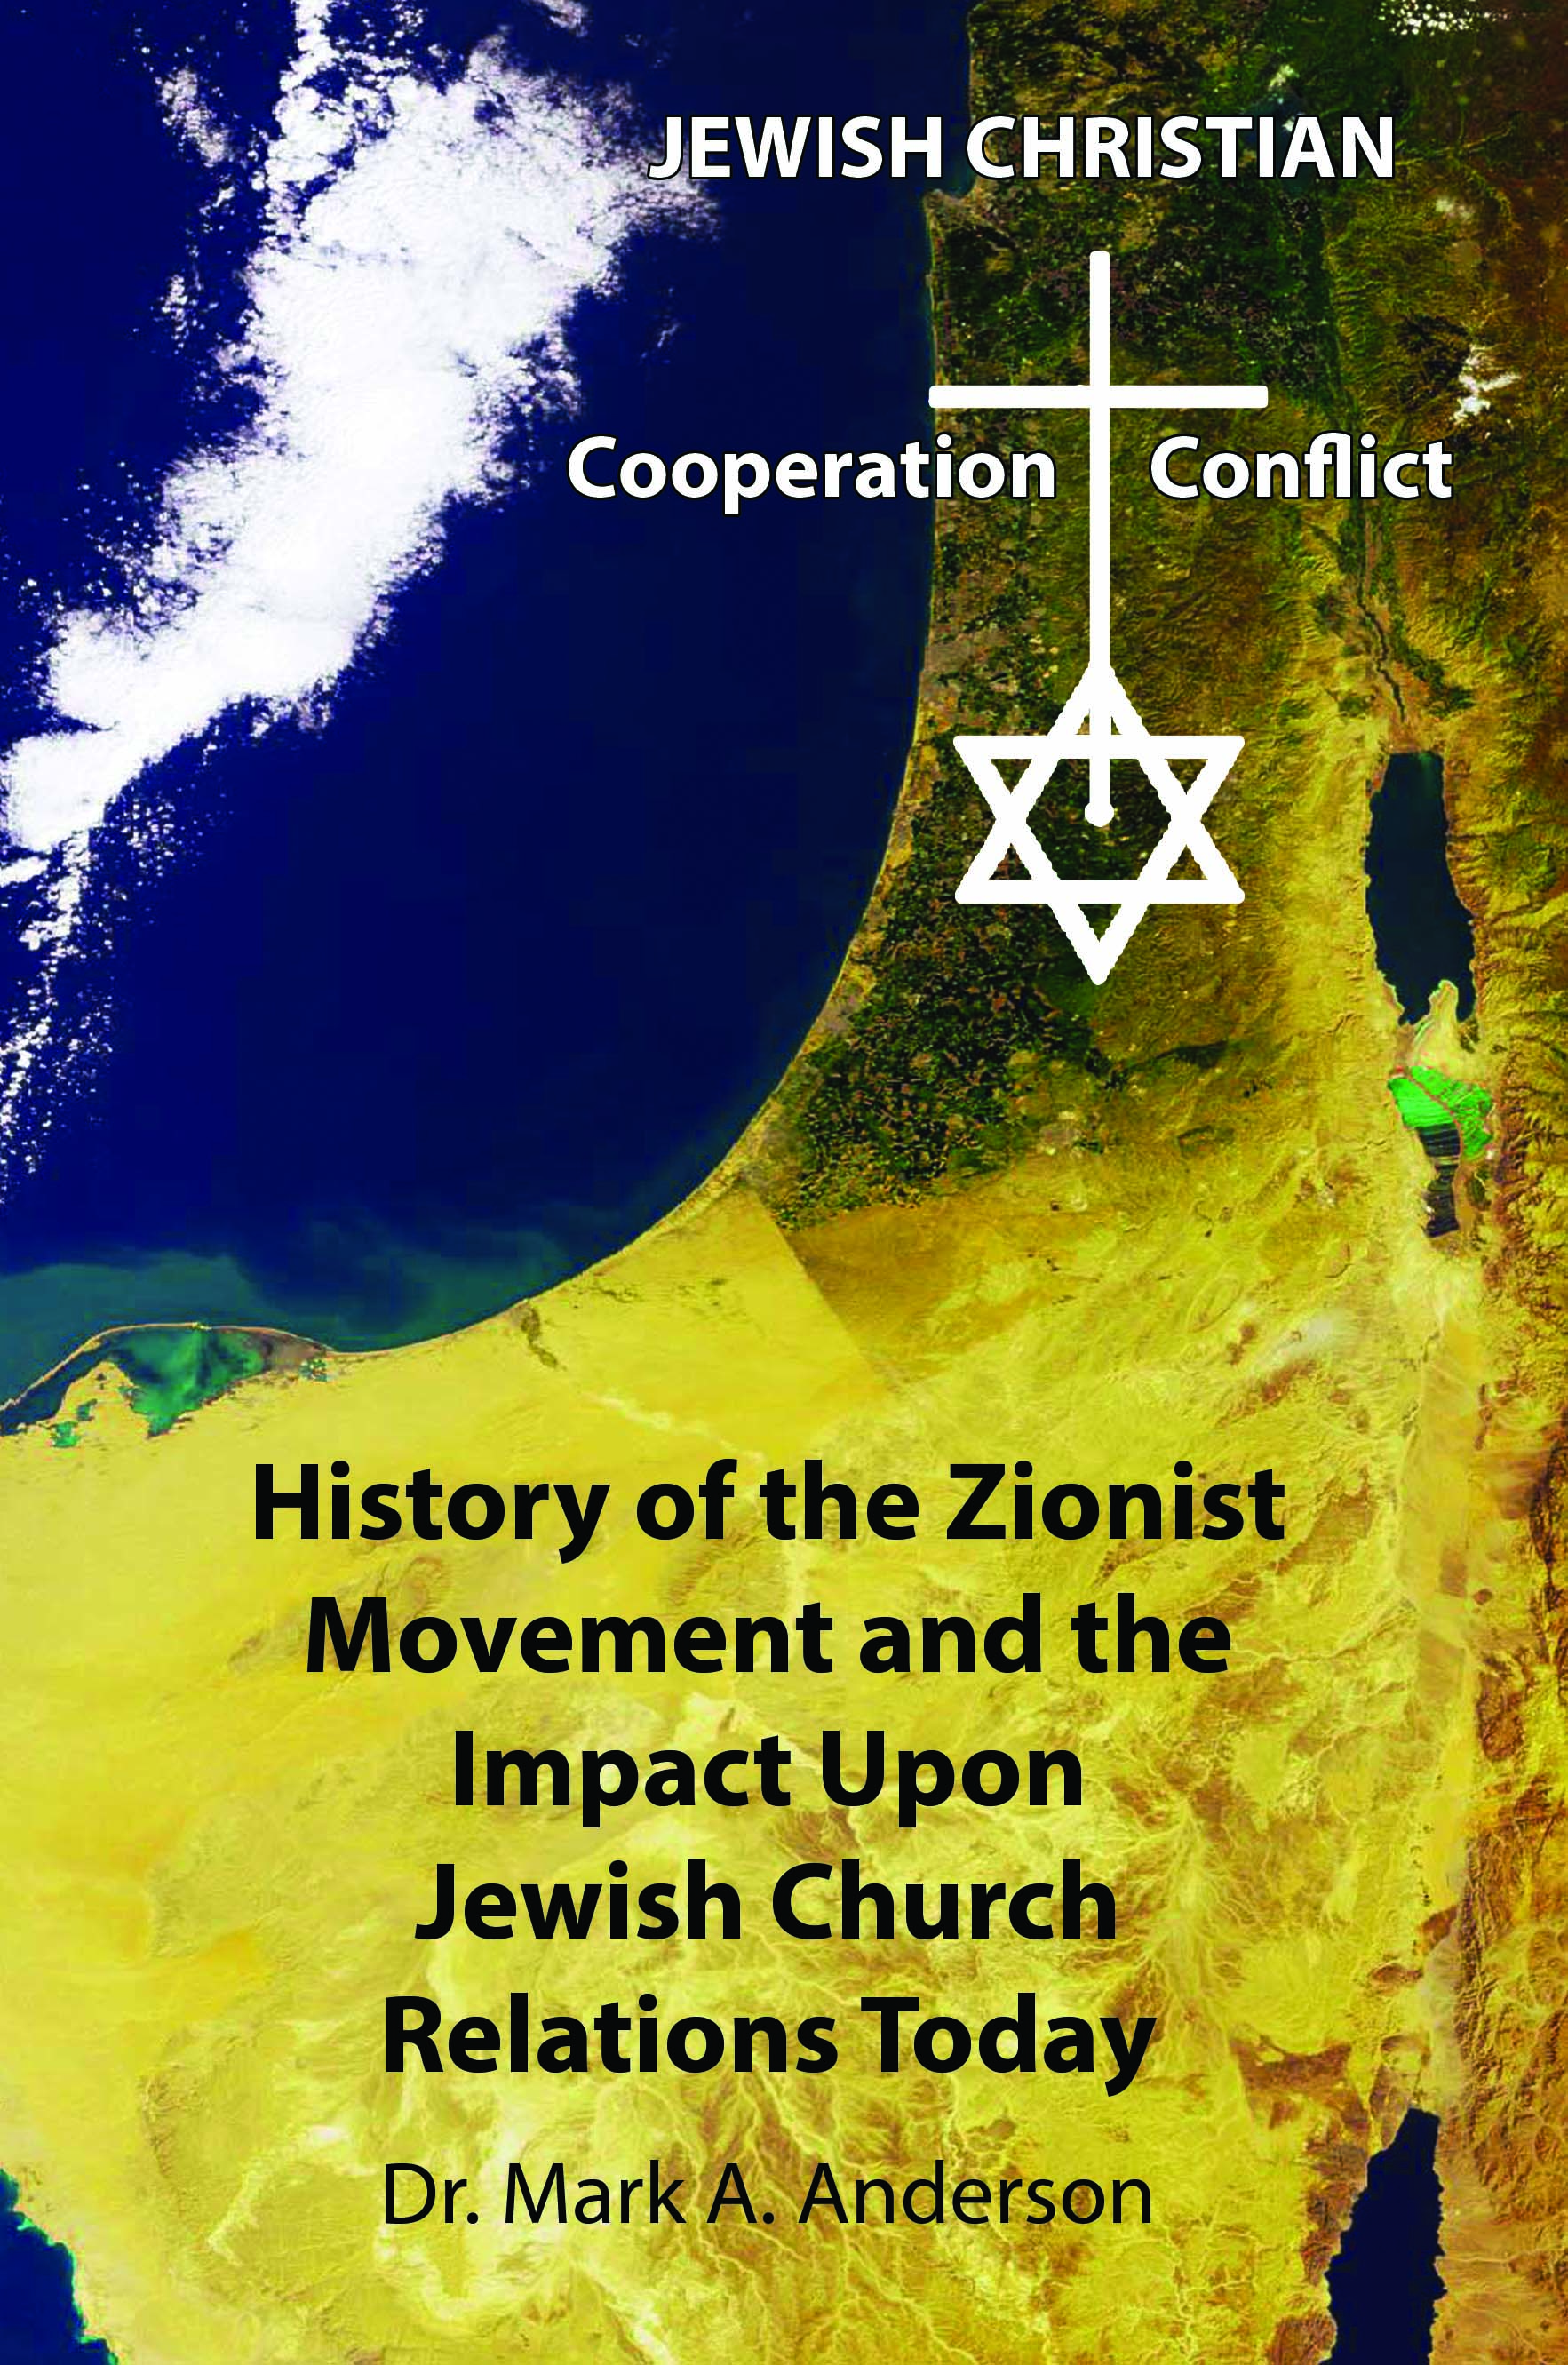 the foundation of zionism by the jews and its impact Christian zionism: an egregious threat the nature of the movement and its detrimental impact on policy was the because of its objectification of jews.